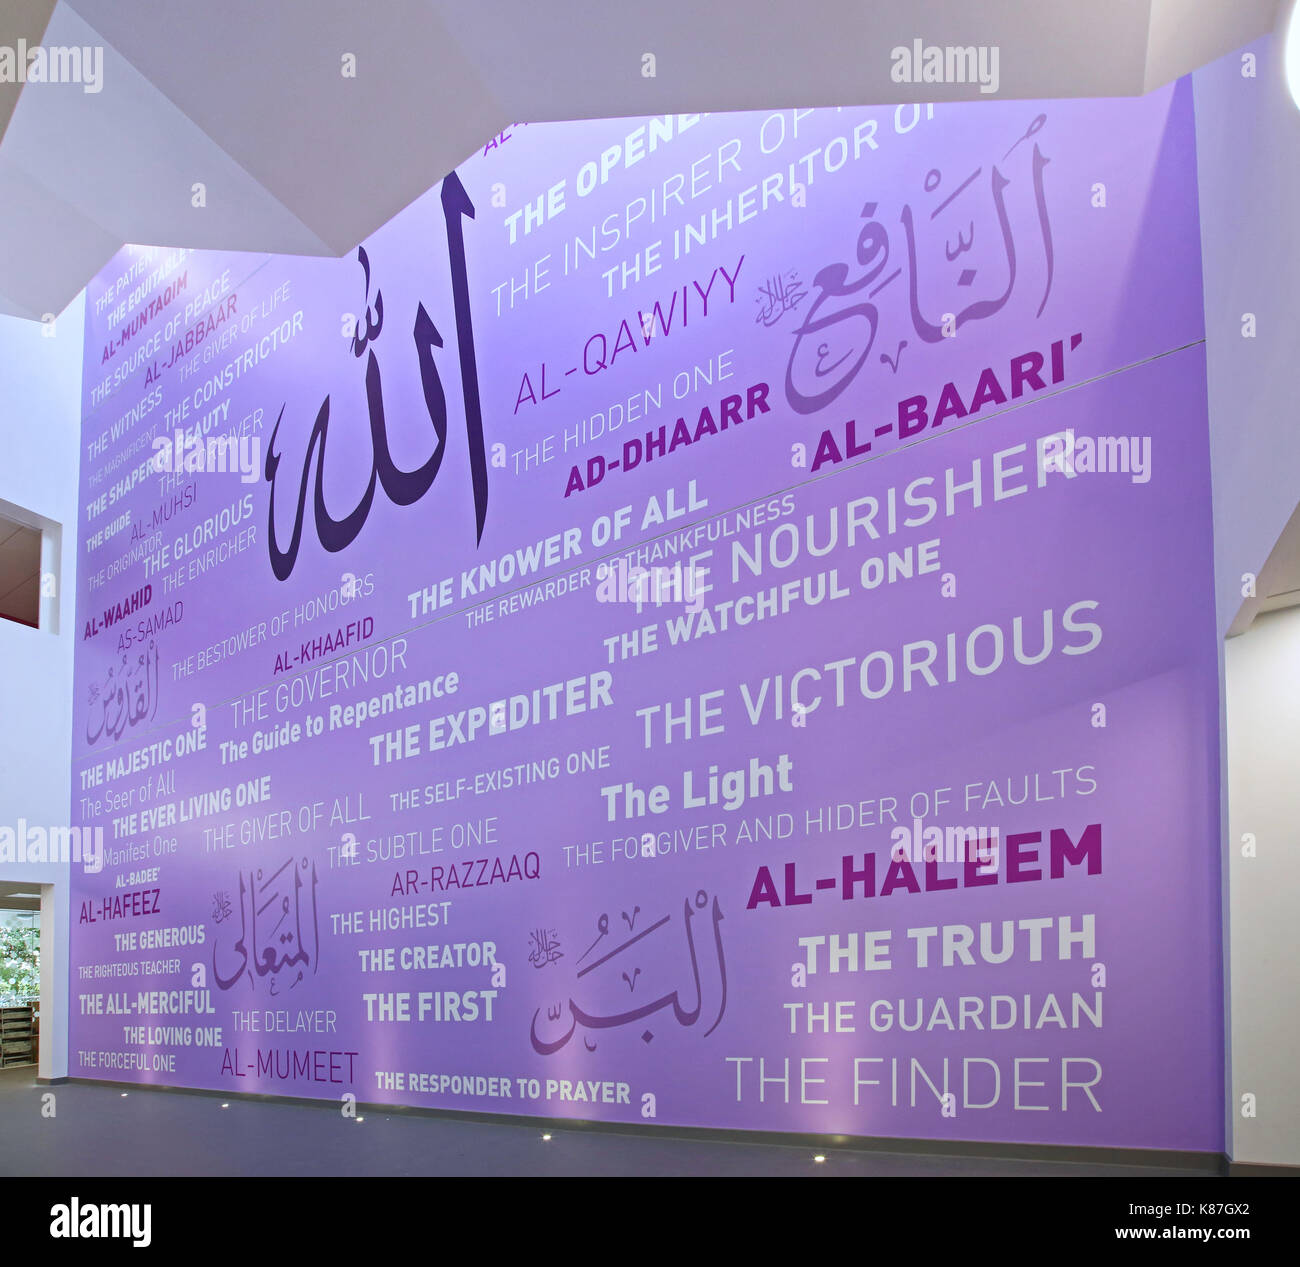 Three-storey high mural on the atrium wall of a new, Islamic Faith School in London. Displays descriptions of The Prophet in English and Arabic text. - Stock Image